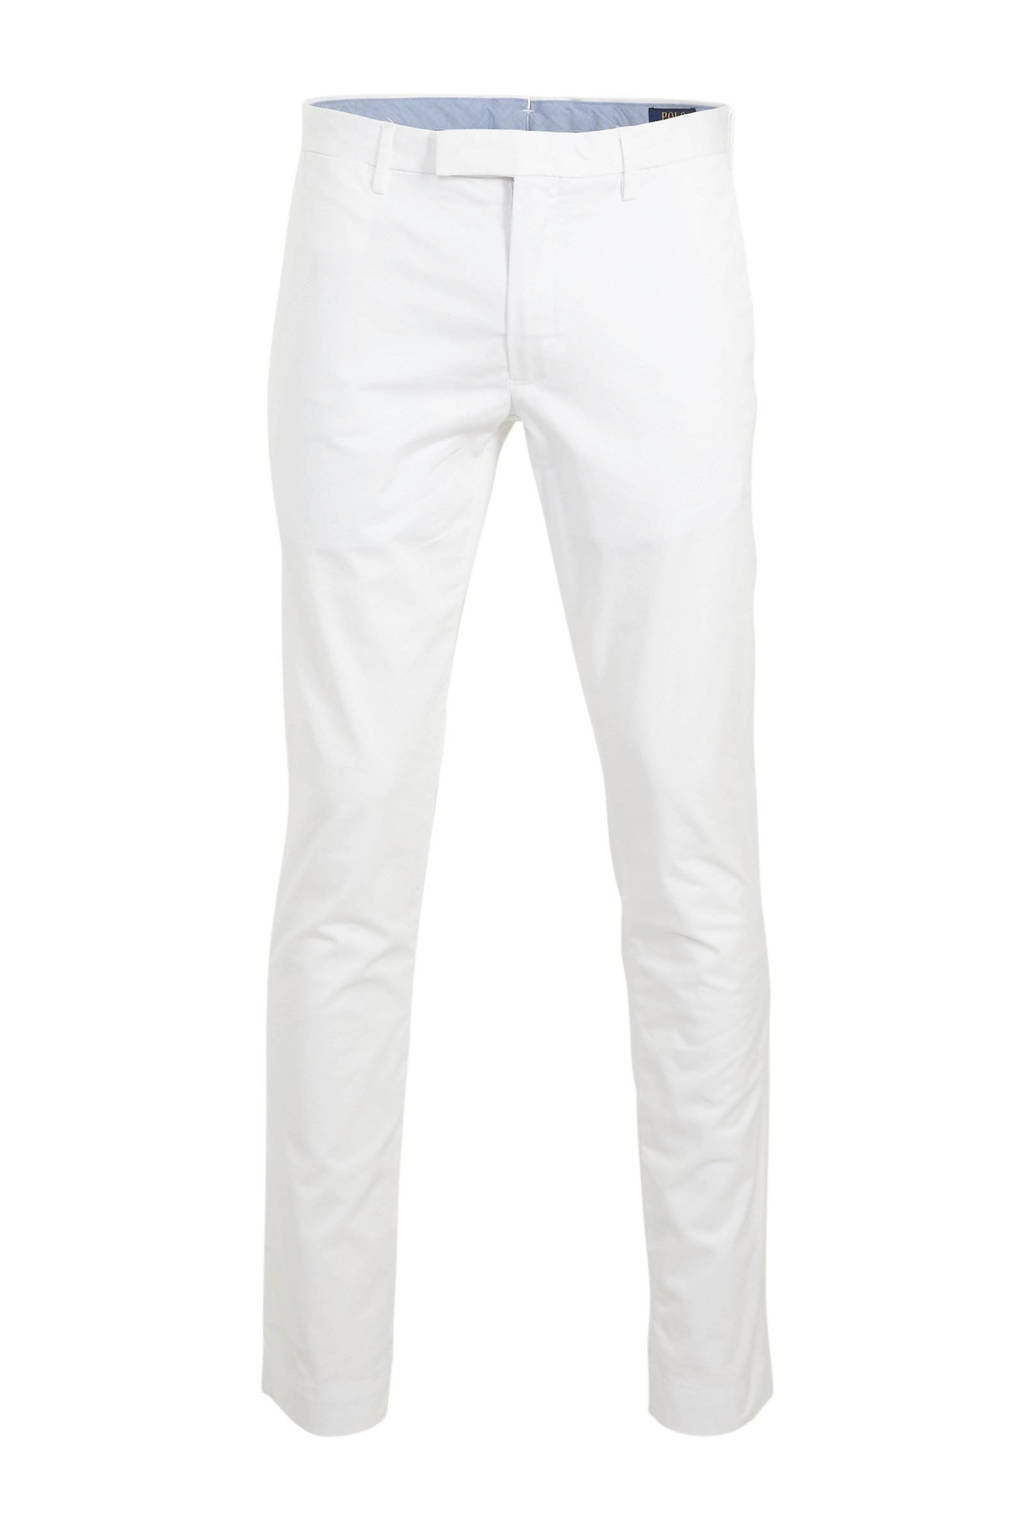 POLO Ralph Lauren slim fit chino wit, Wit